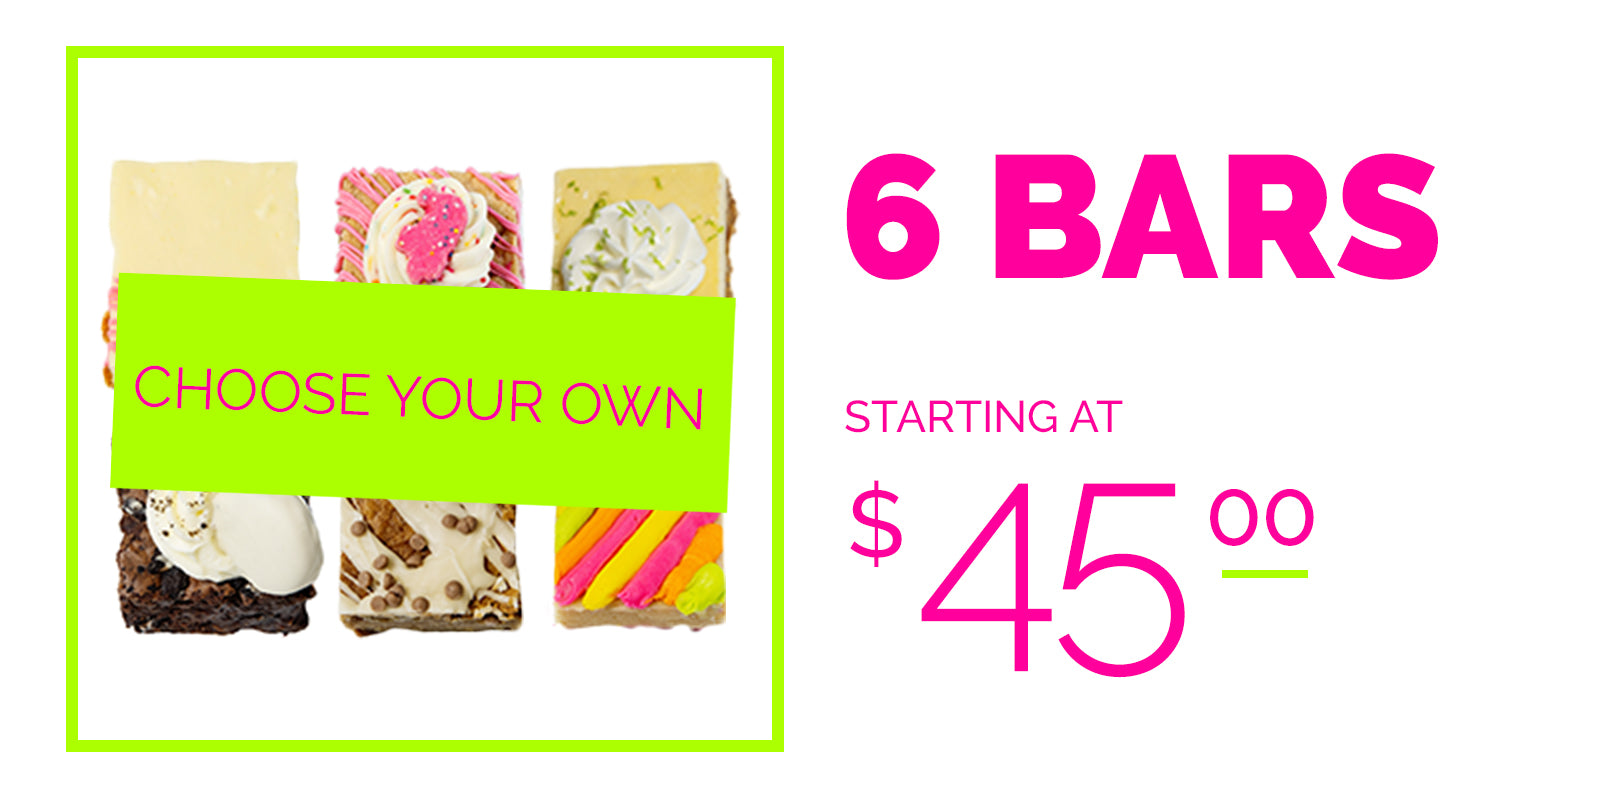 Choose your own, 6 bars starting at $45